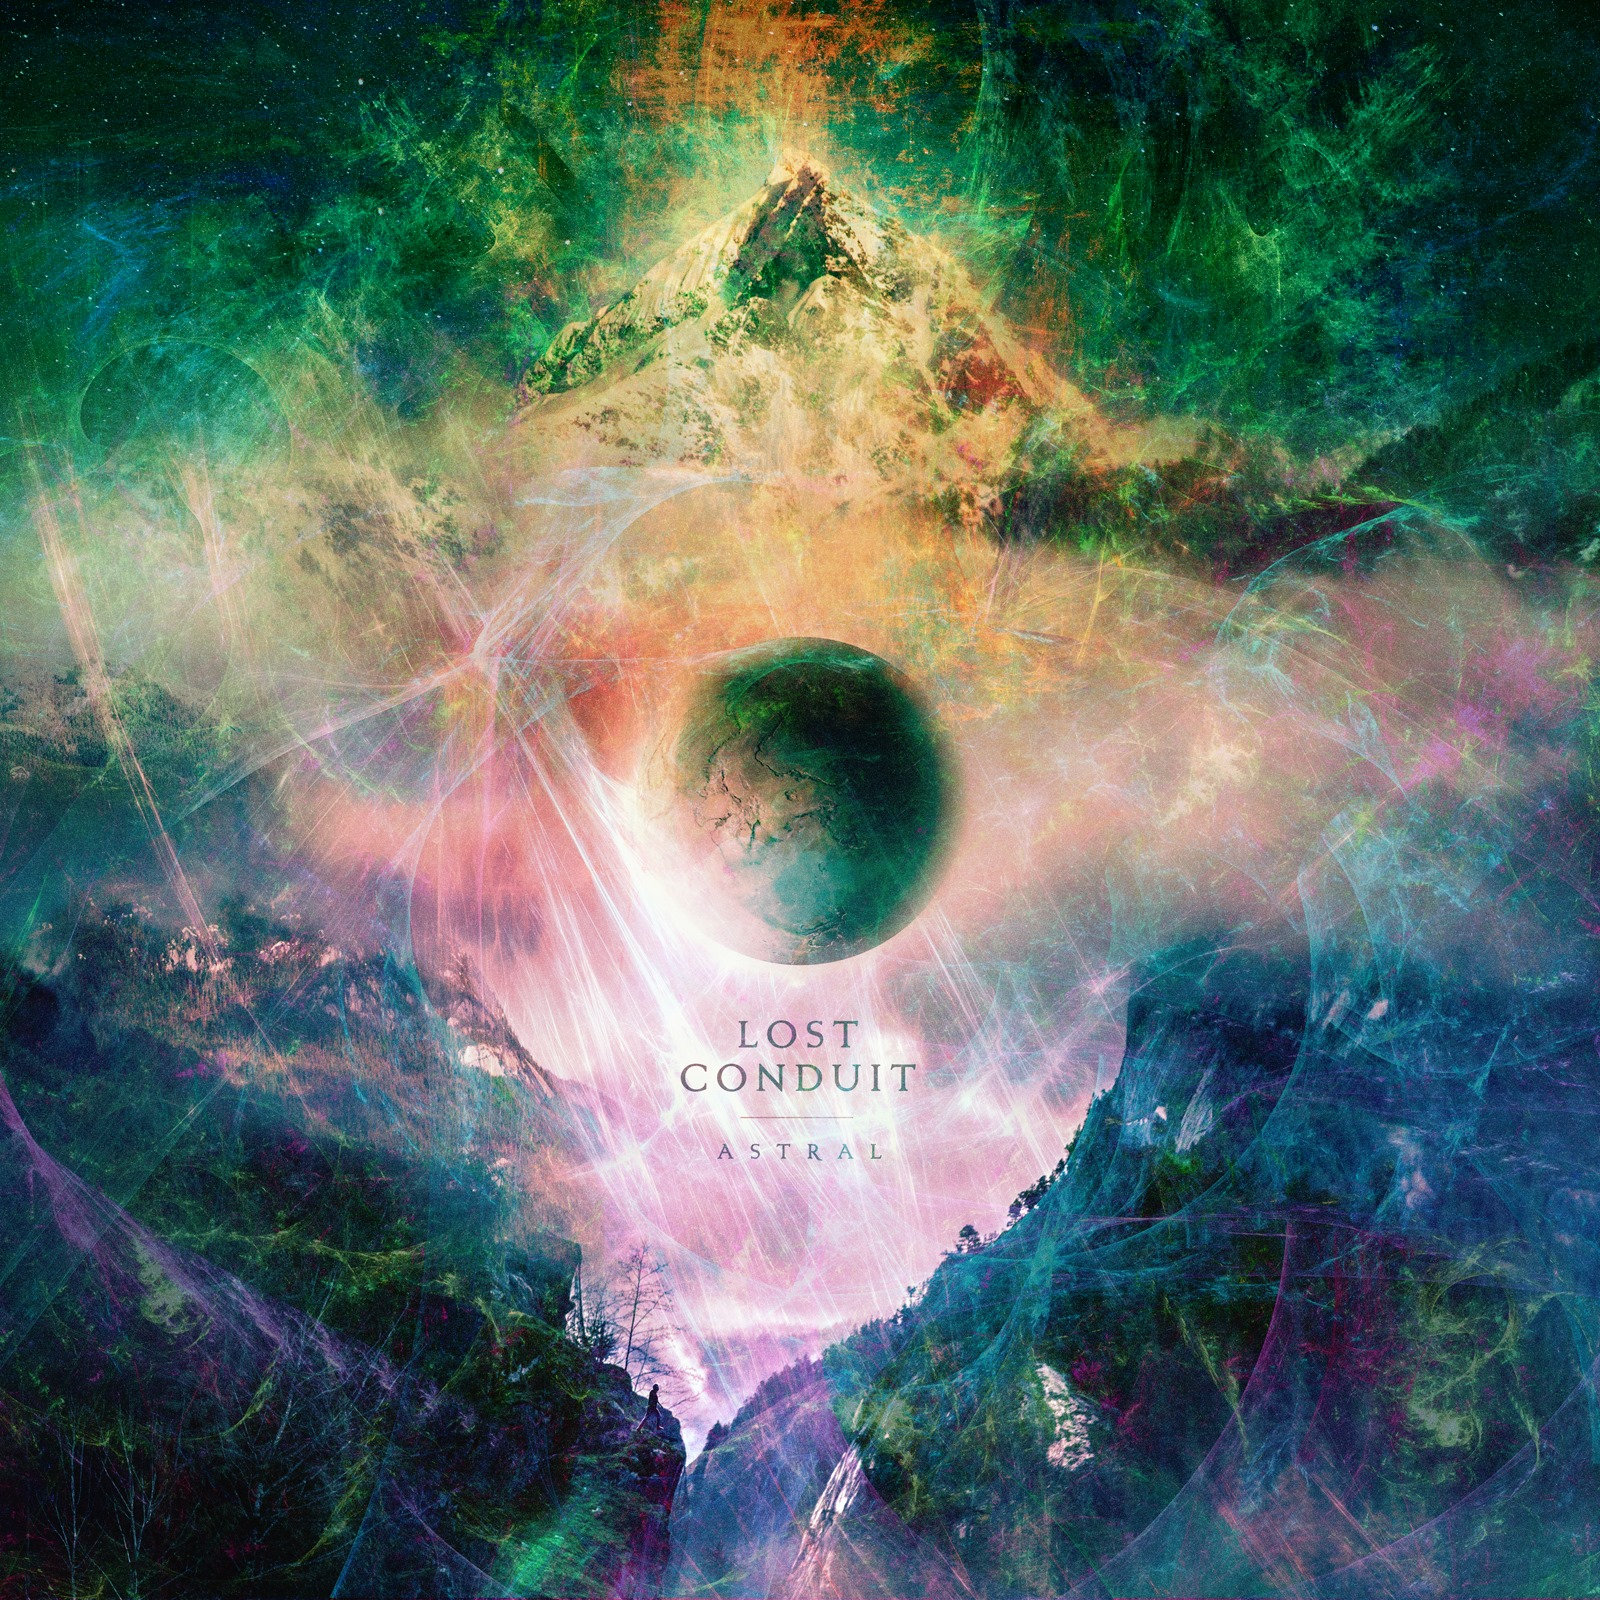 Lost Conduit - Astral [single] (2019)